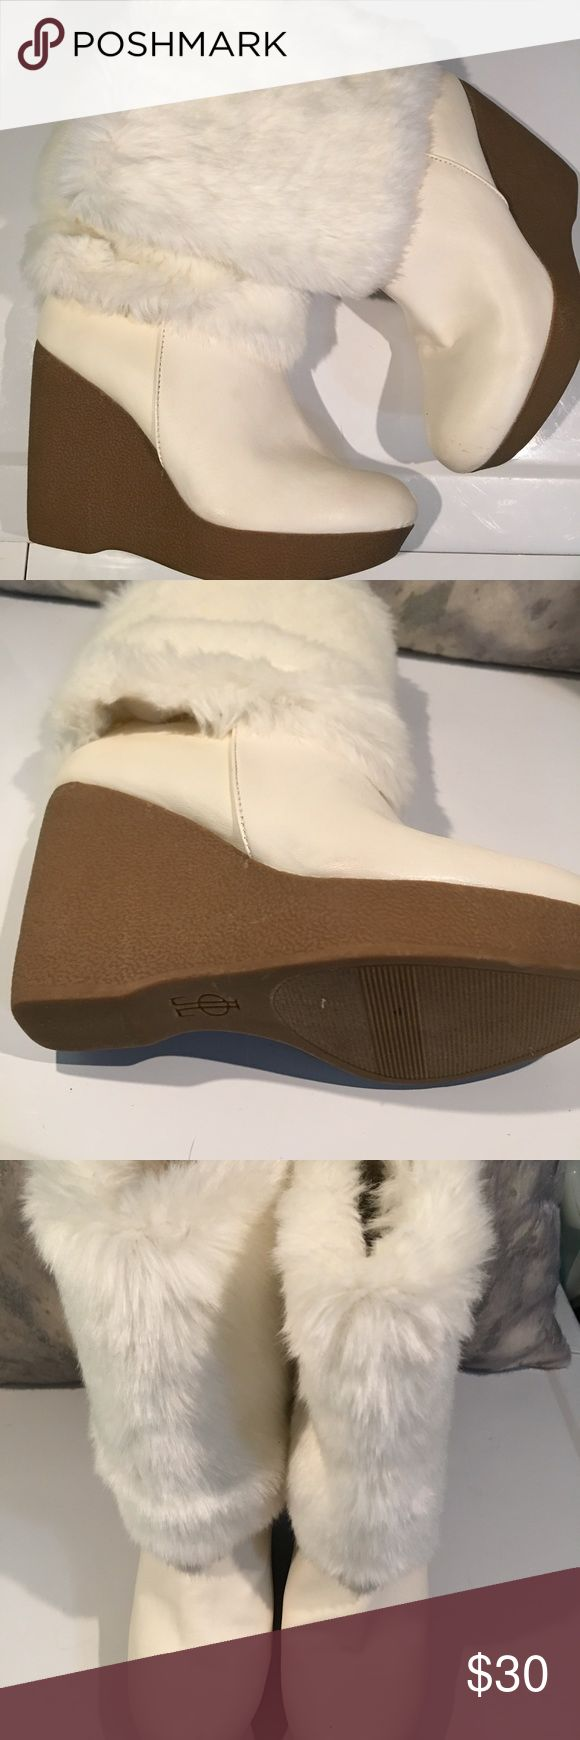 "BEAUTIFUL JLO WINTER WHITE FAUX FUR BOOTS SIZE 6 VERY GENTLY WORN...perhaps 2X.  Jennifer Lopez is a great brand!!!  Heel is too high for my sister.  Heel height is 2.5"".  We are cleaning out closets and have many designer items that need to find a new closet!!!!  PRICED TO SELL QUICKLY!!!  Bundle bundle bundle for additional savings. Jennifer Lopez Shoes Winter & Rain Boots"